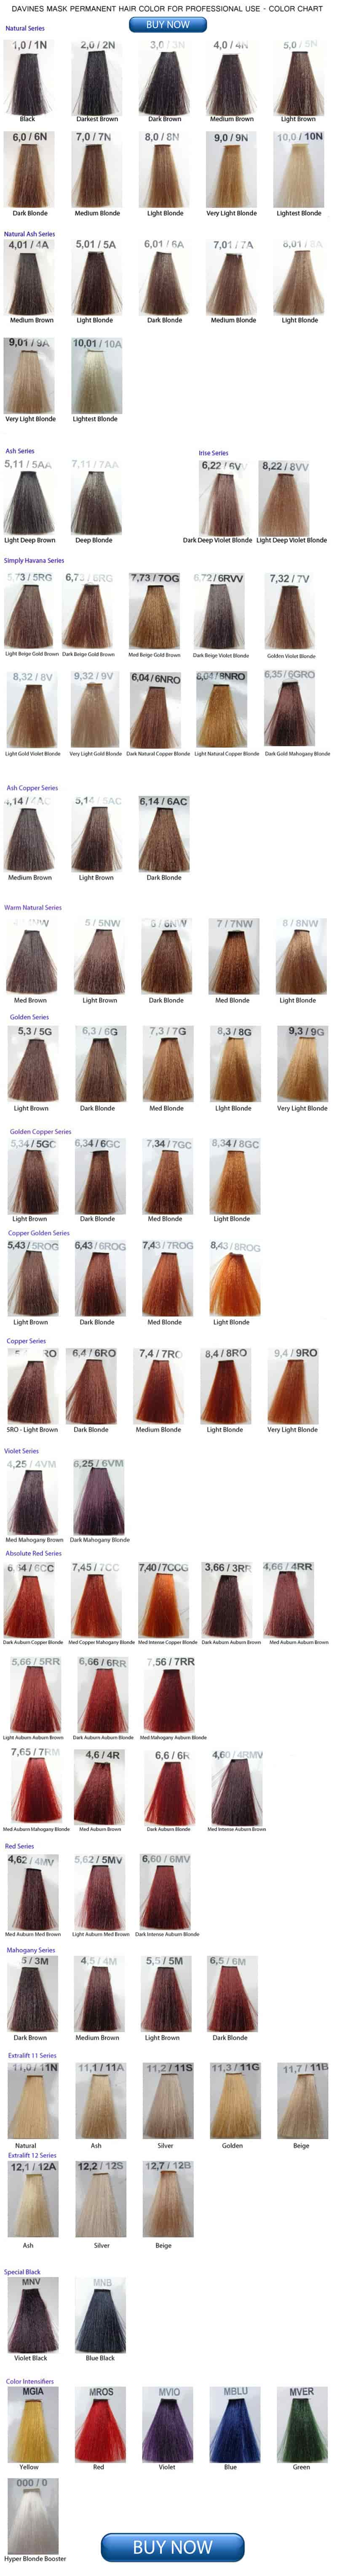 Davines Mask Hair Color Chart